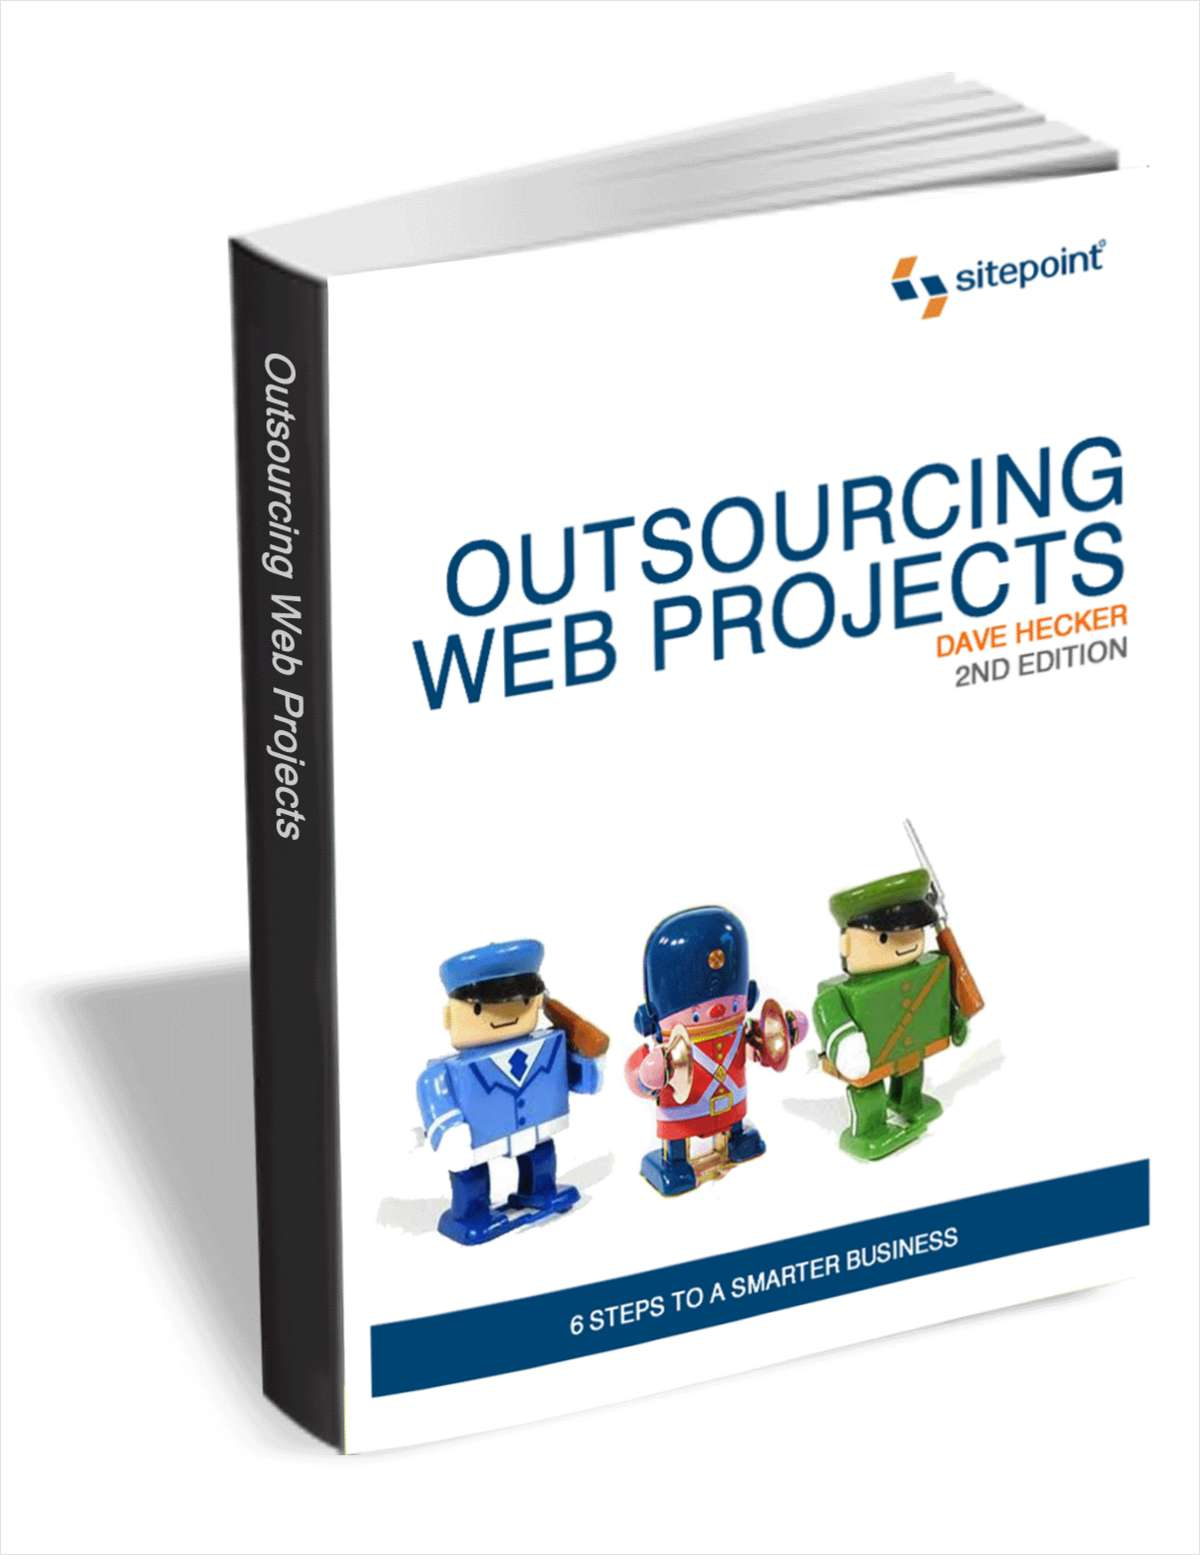 Outsourcing Web Projects: 6 Steps to a Smarter Business (Valued at $30)